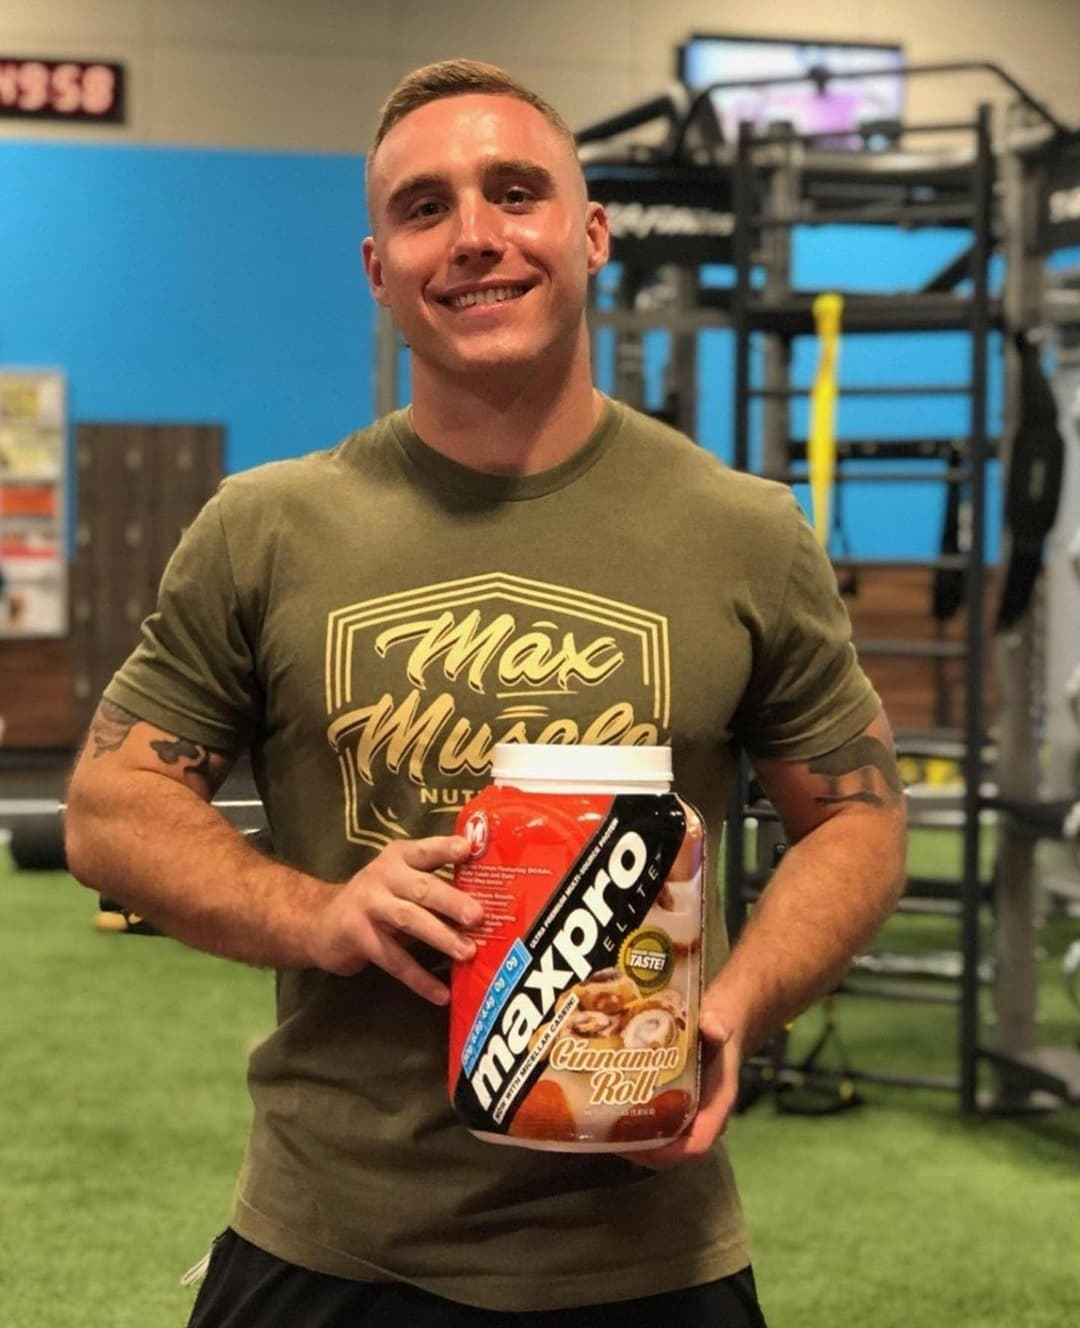 Child actor Lorenzo Brino posing for the camera inside a gym while holding a jar of MaxPro Elite protein   Photo: Instagram.com/mimi_brino